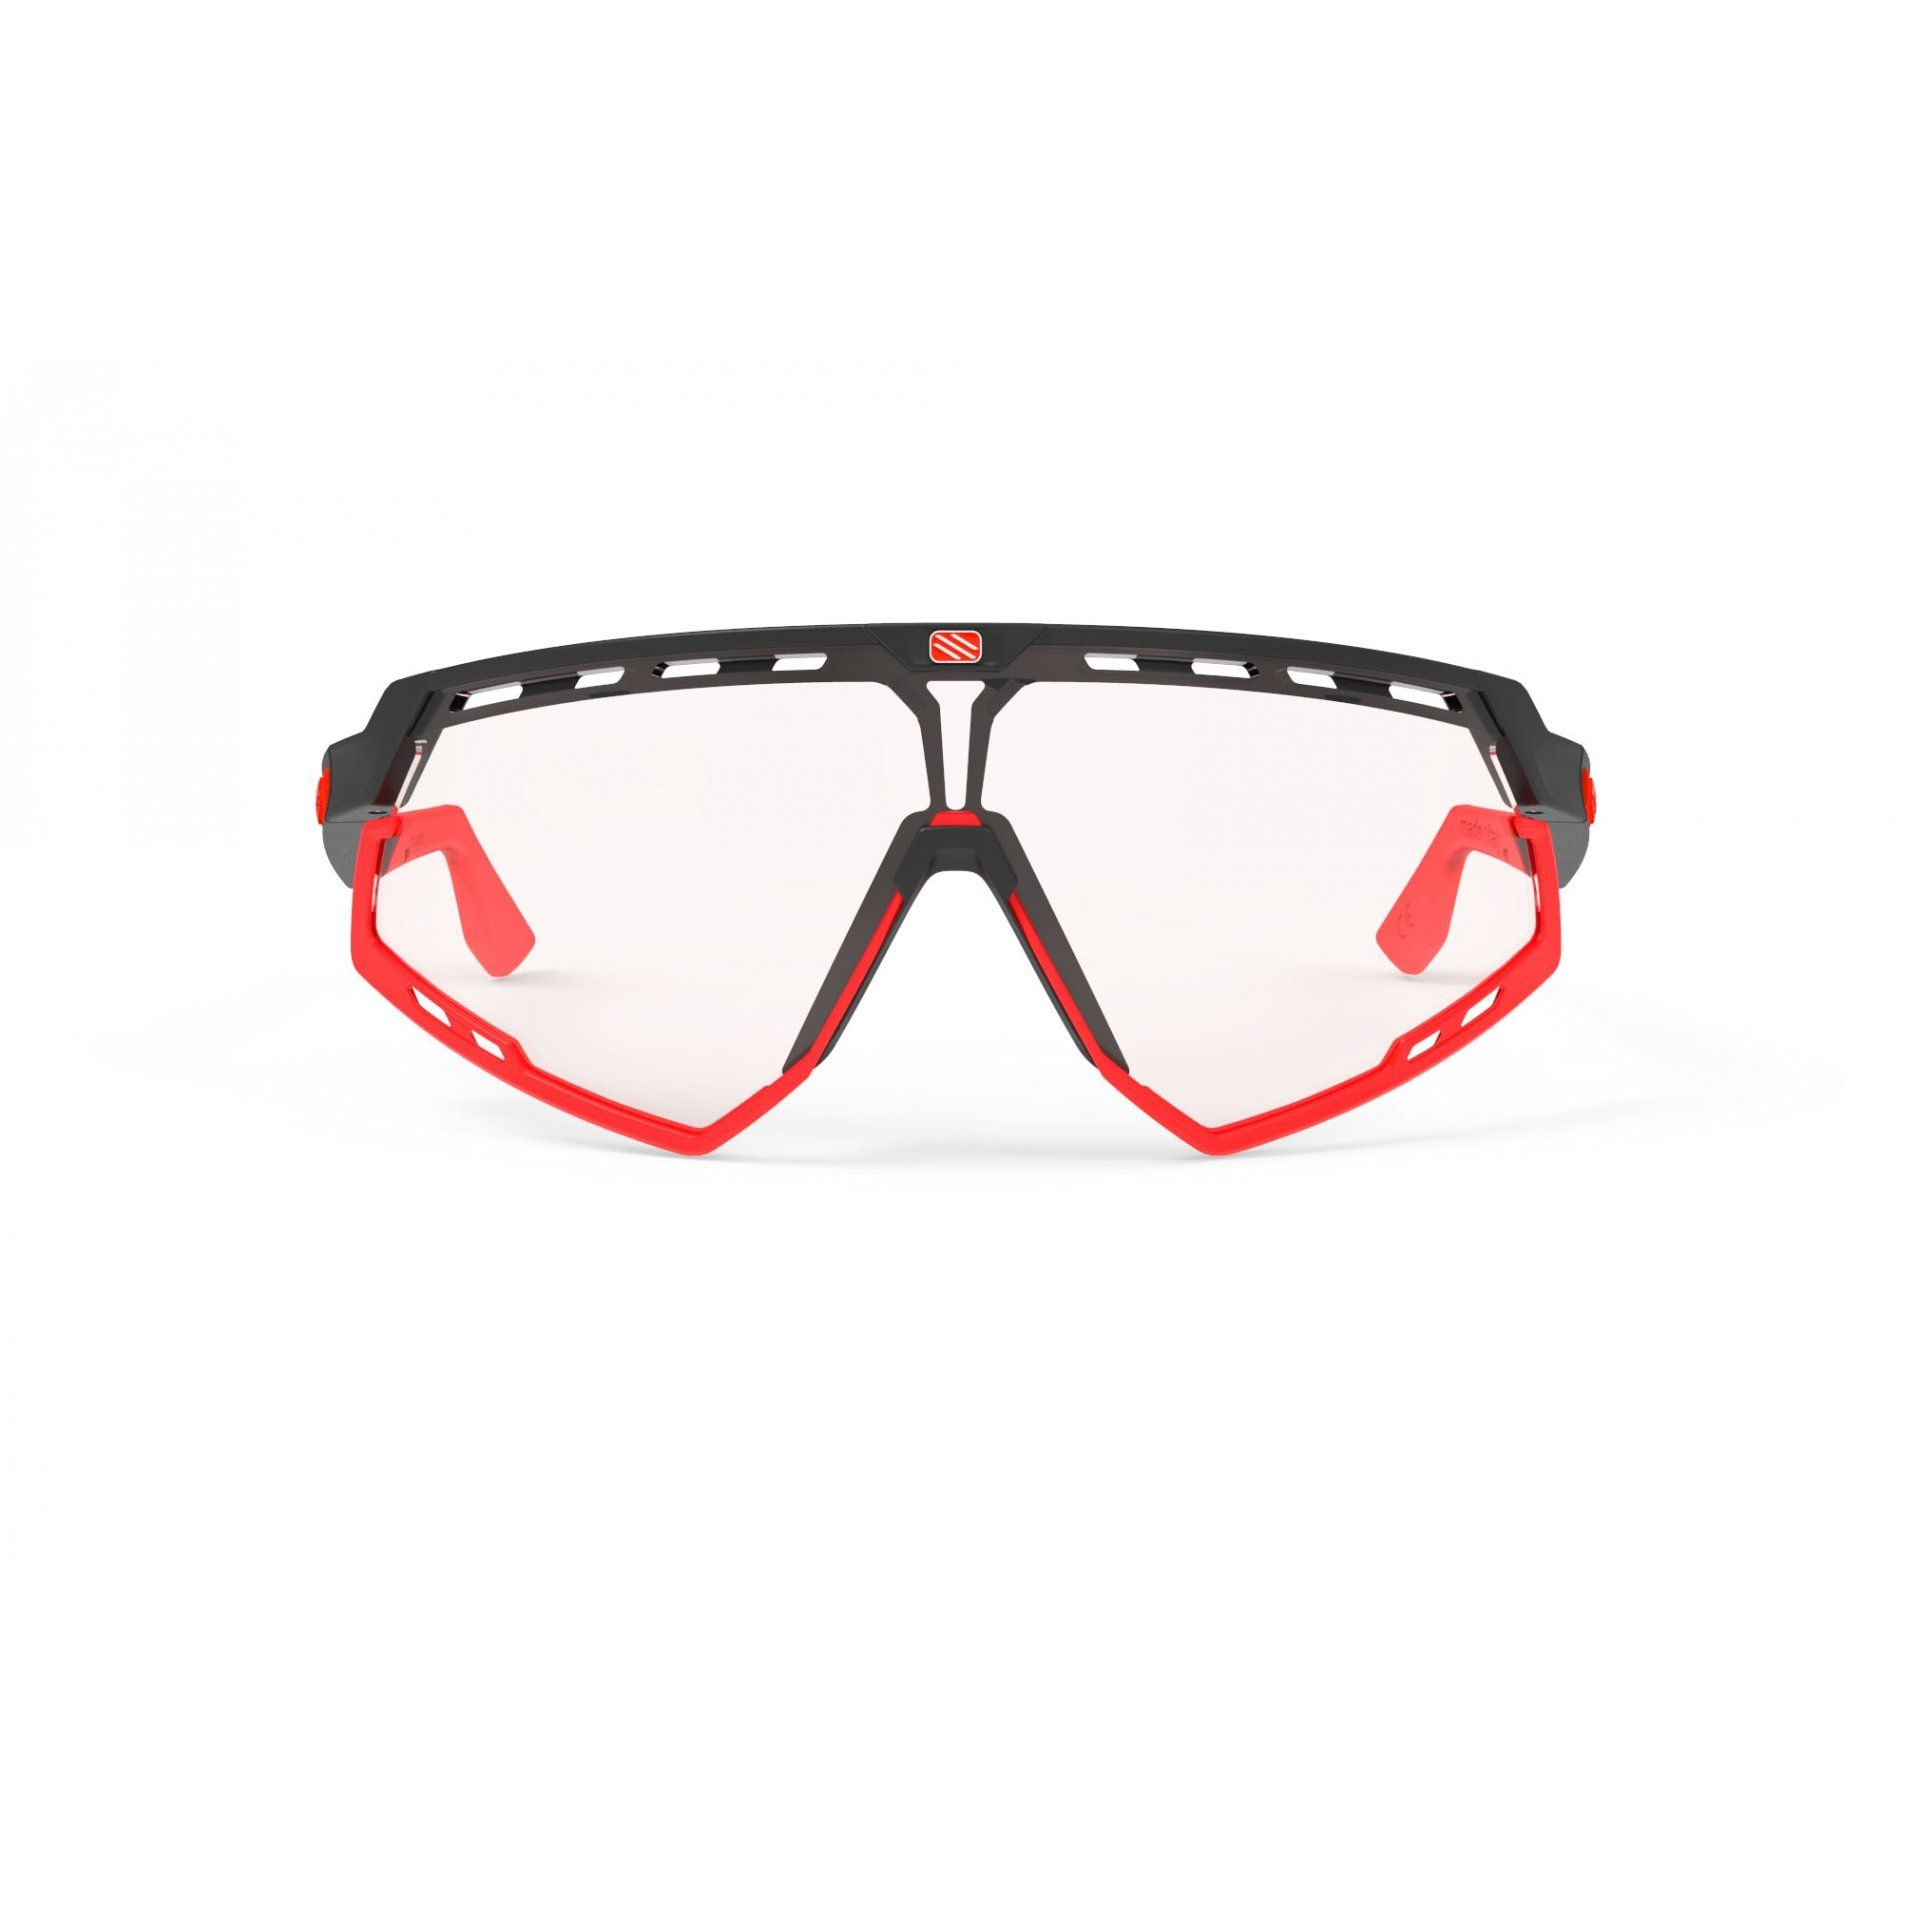 OKULARY RUDY PROJECT DEFENDER BLACK MATTE+PHOTOCHROMIC RED 2